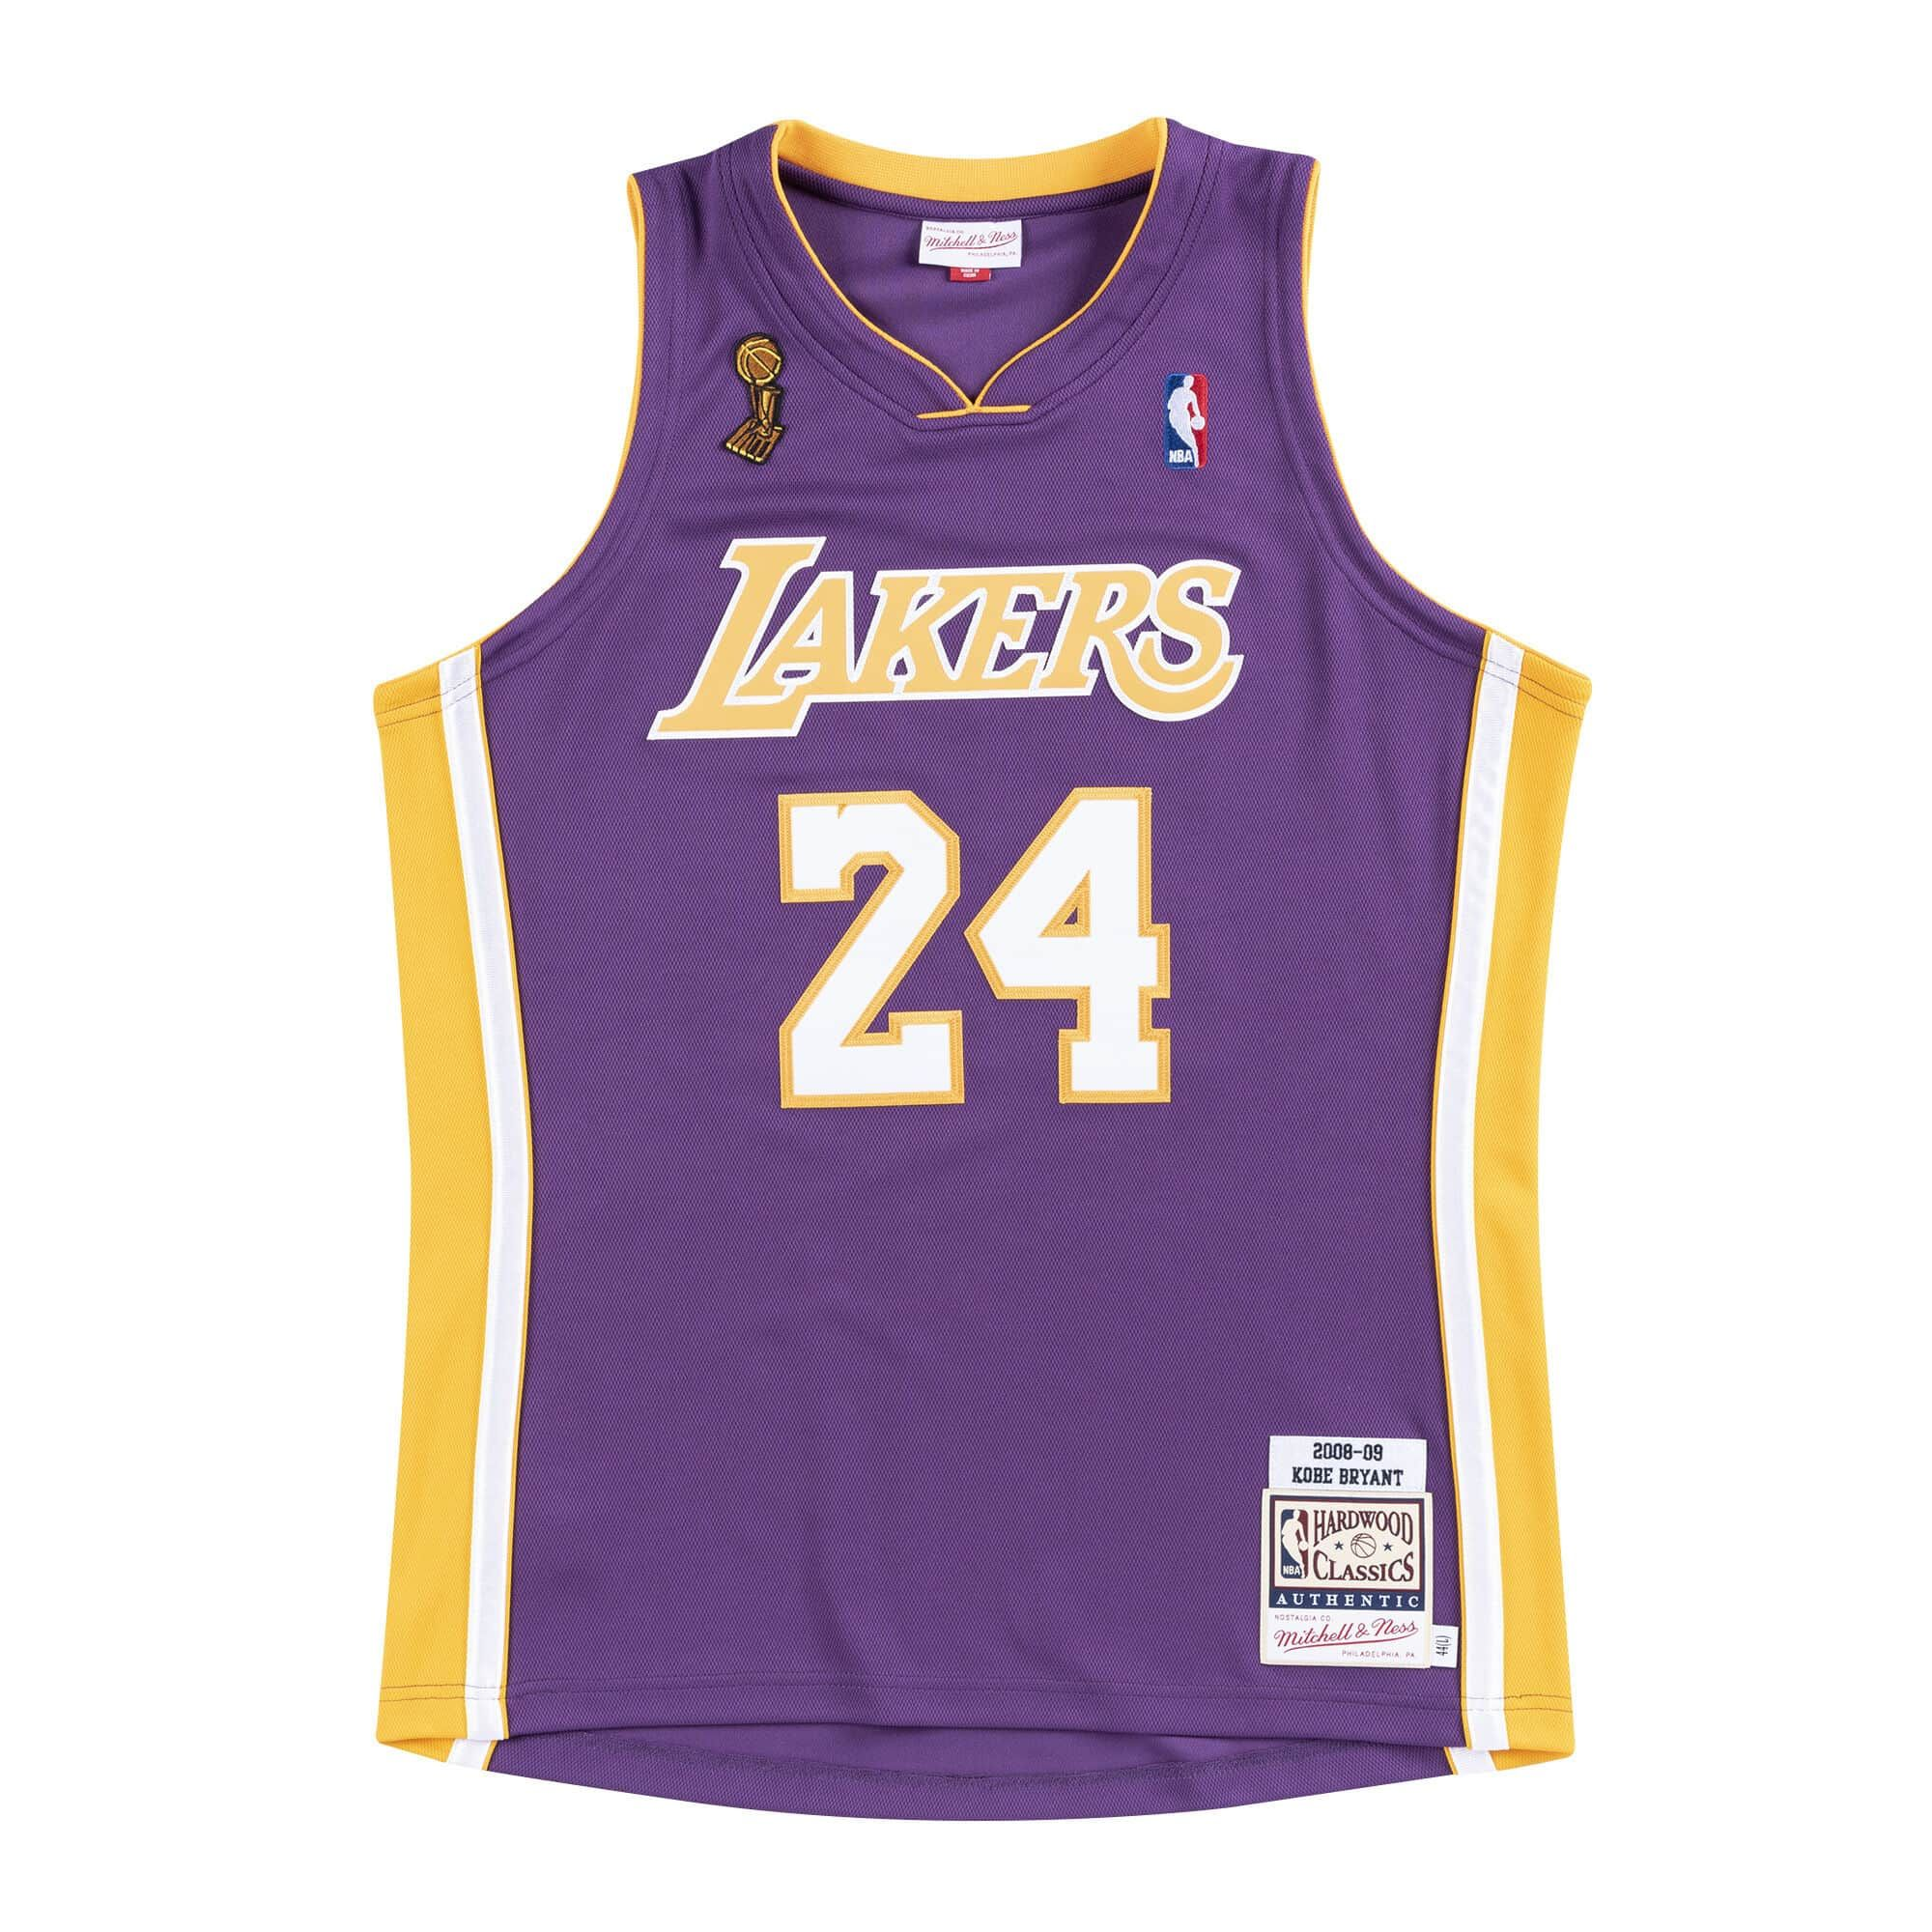 Authentic Jersey Los Angeles Lakers Road Finals 2008 09 Kobe Bryant Shop Mitchell Ness Authentic Jerseys And Kobe Bryant Lakers Kobe Bryant Kobe Bryant 24